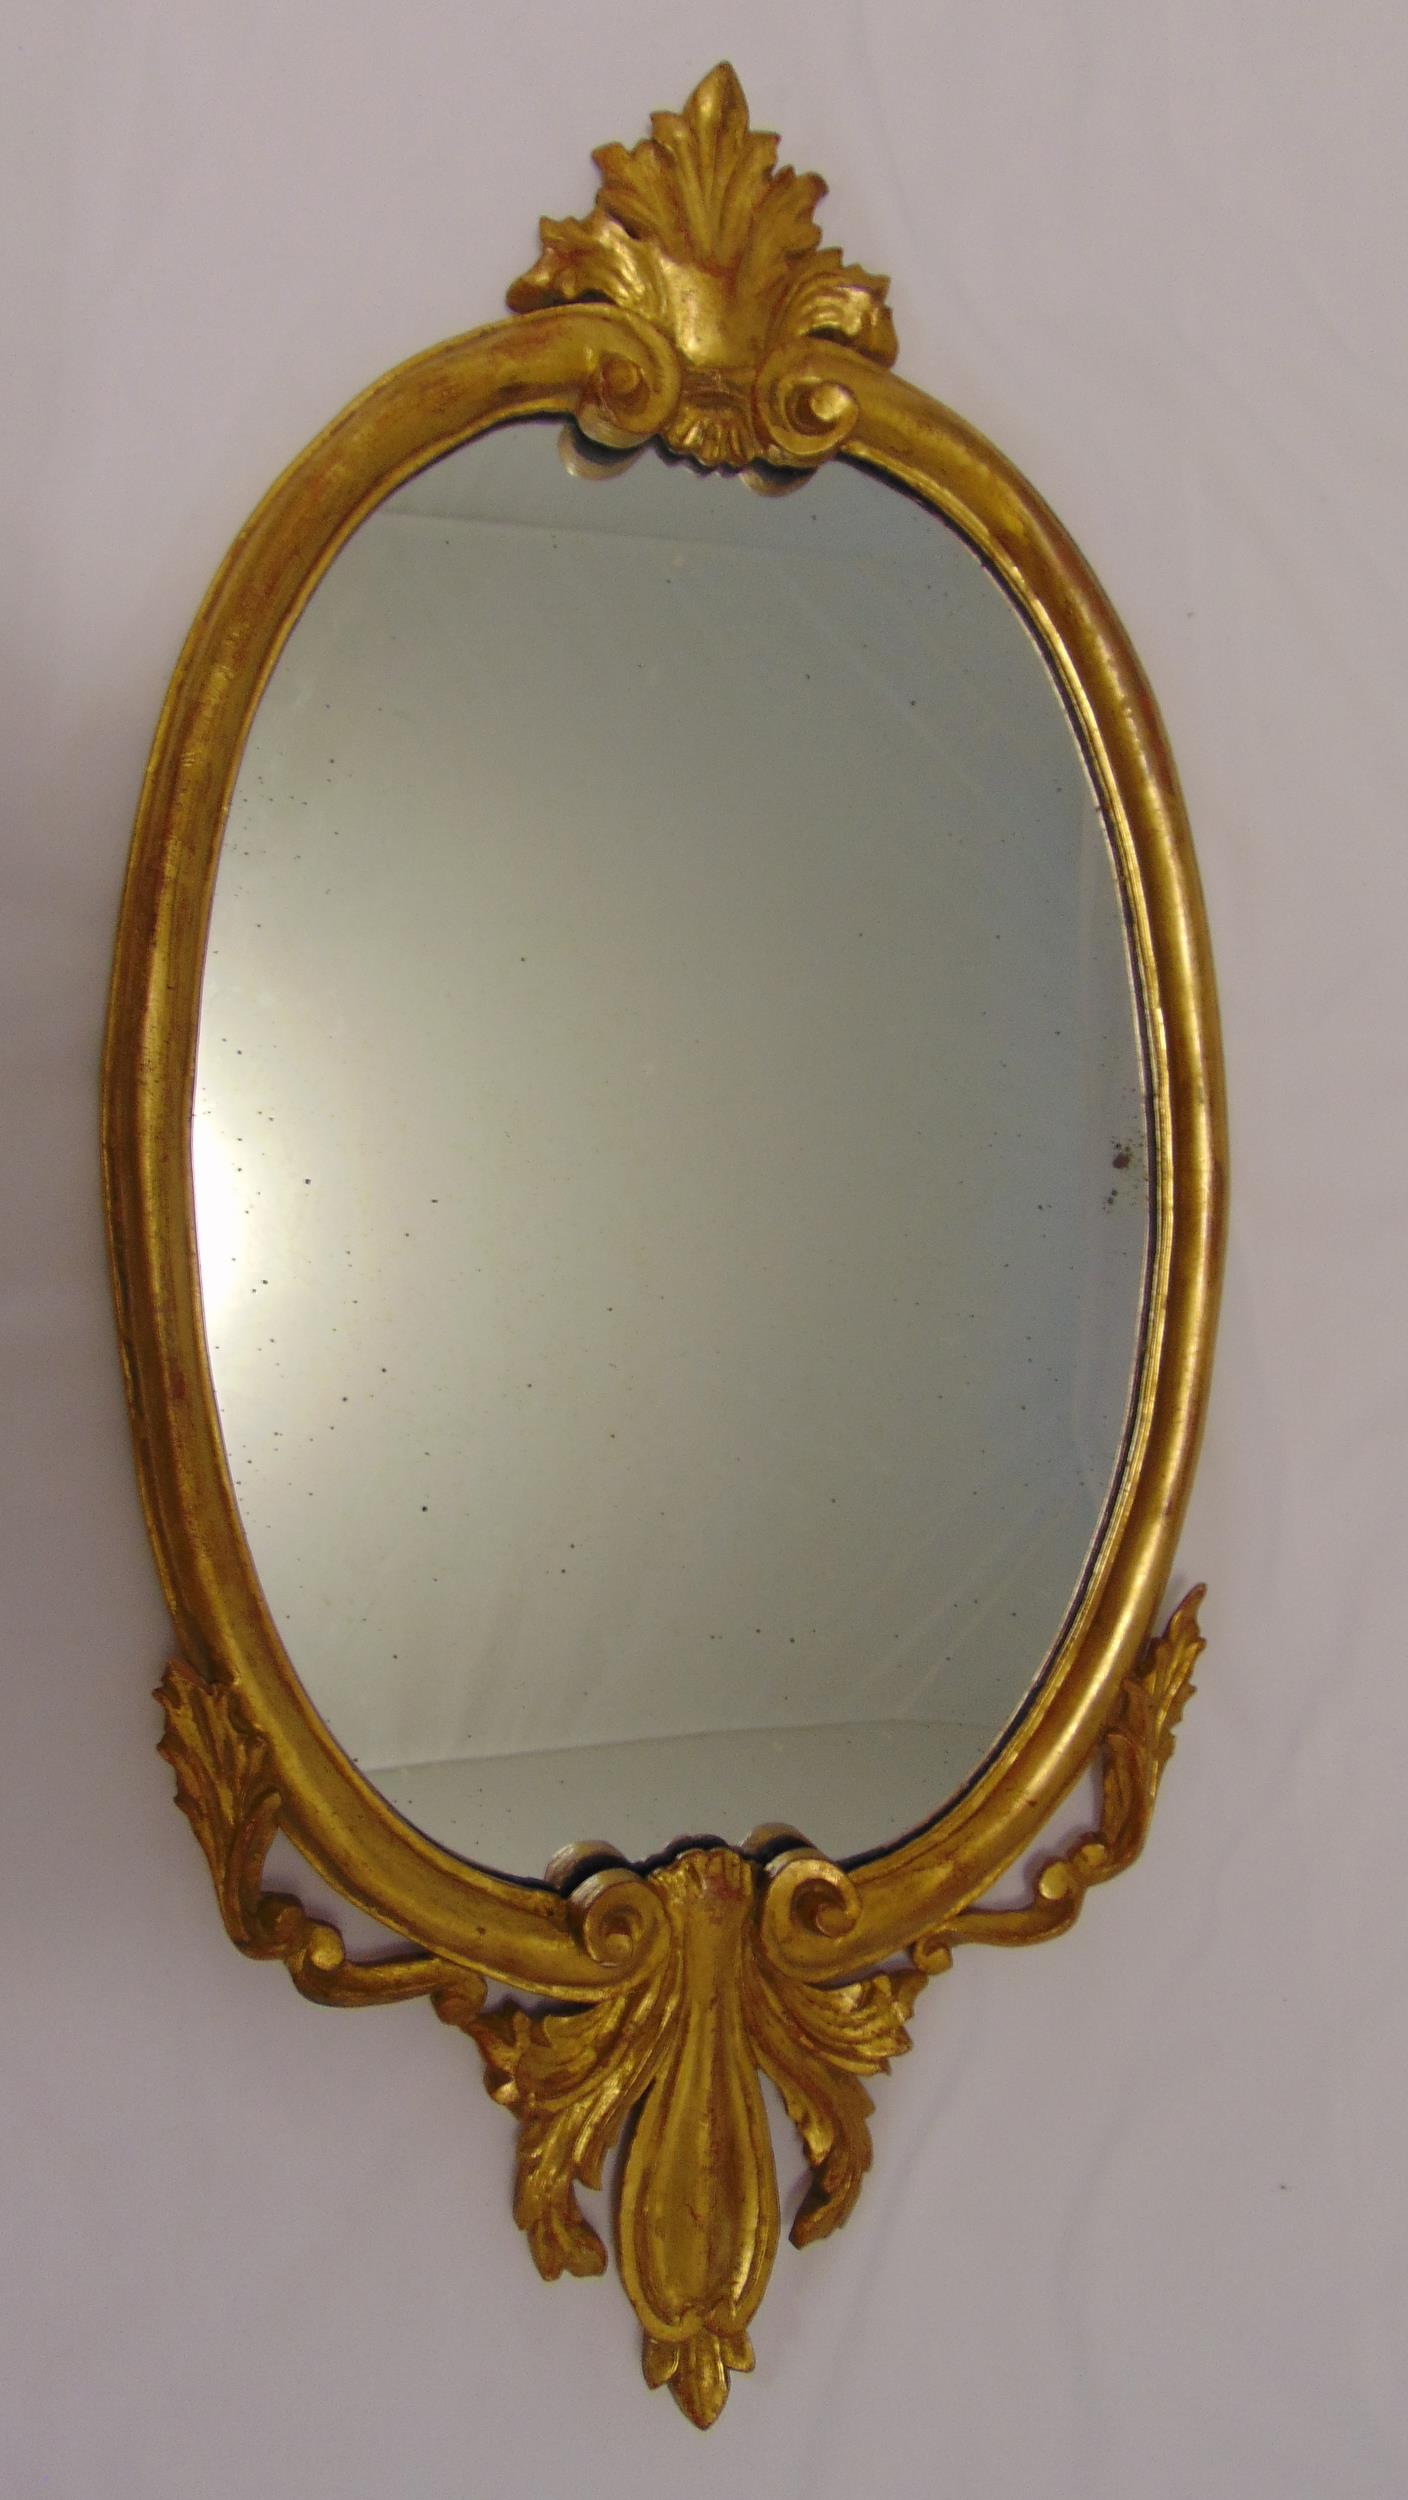 A gilded wooden oval wall mirror, 76 x 38cm